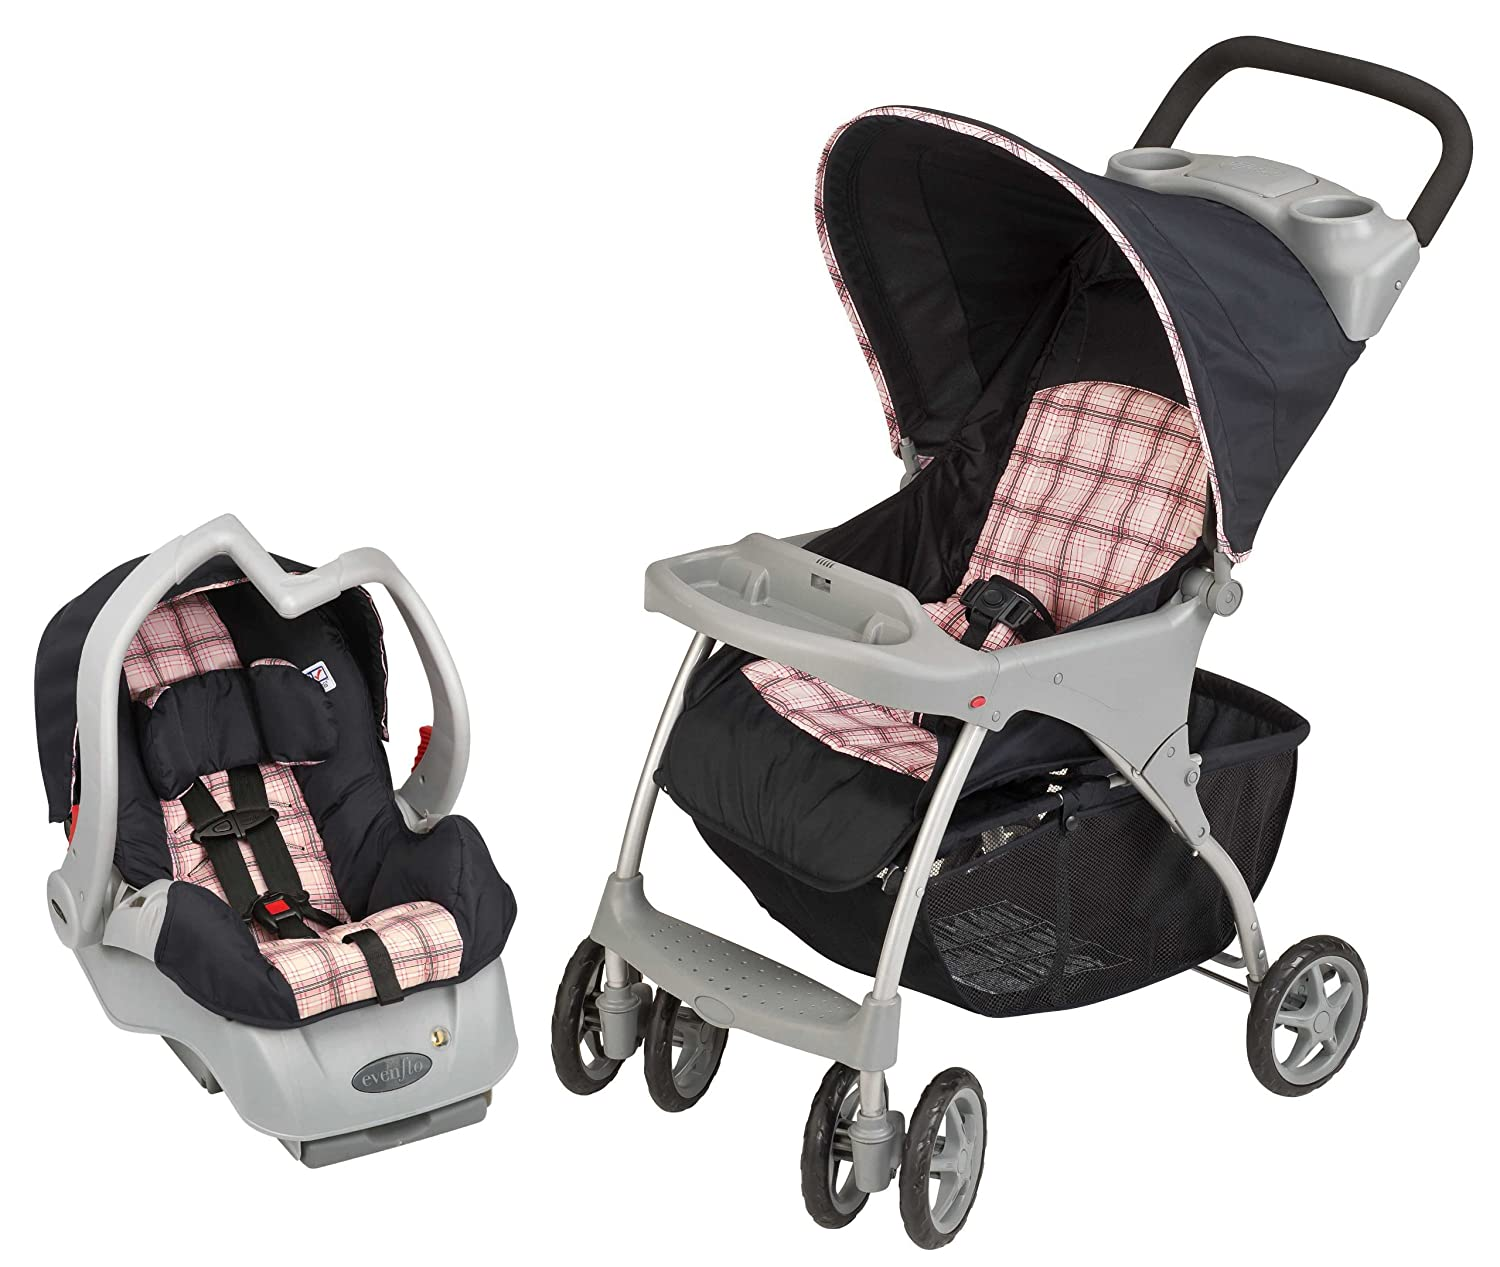 Evenflo Journey Travel System, Kayla